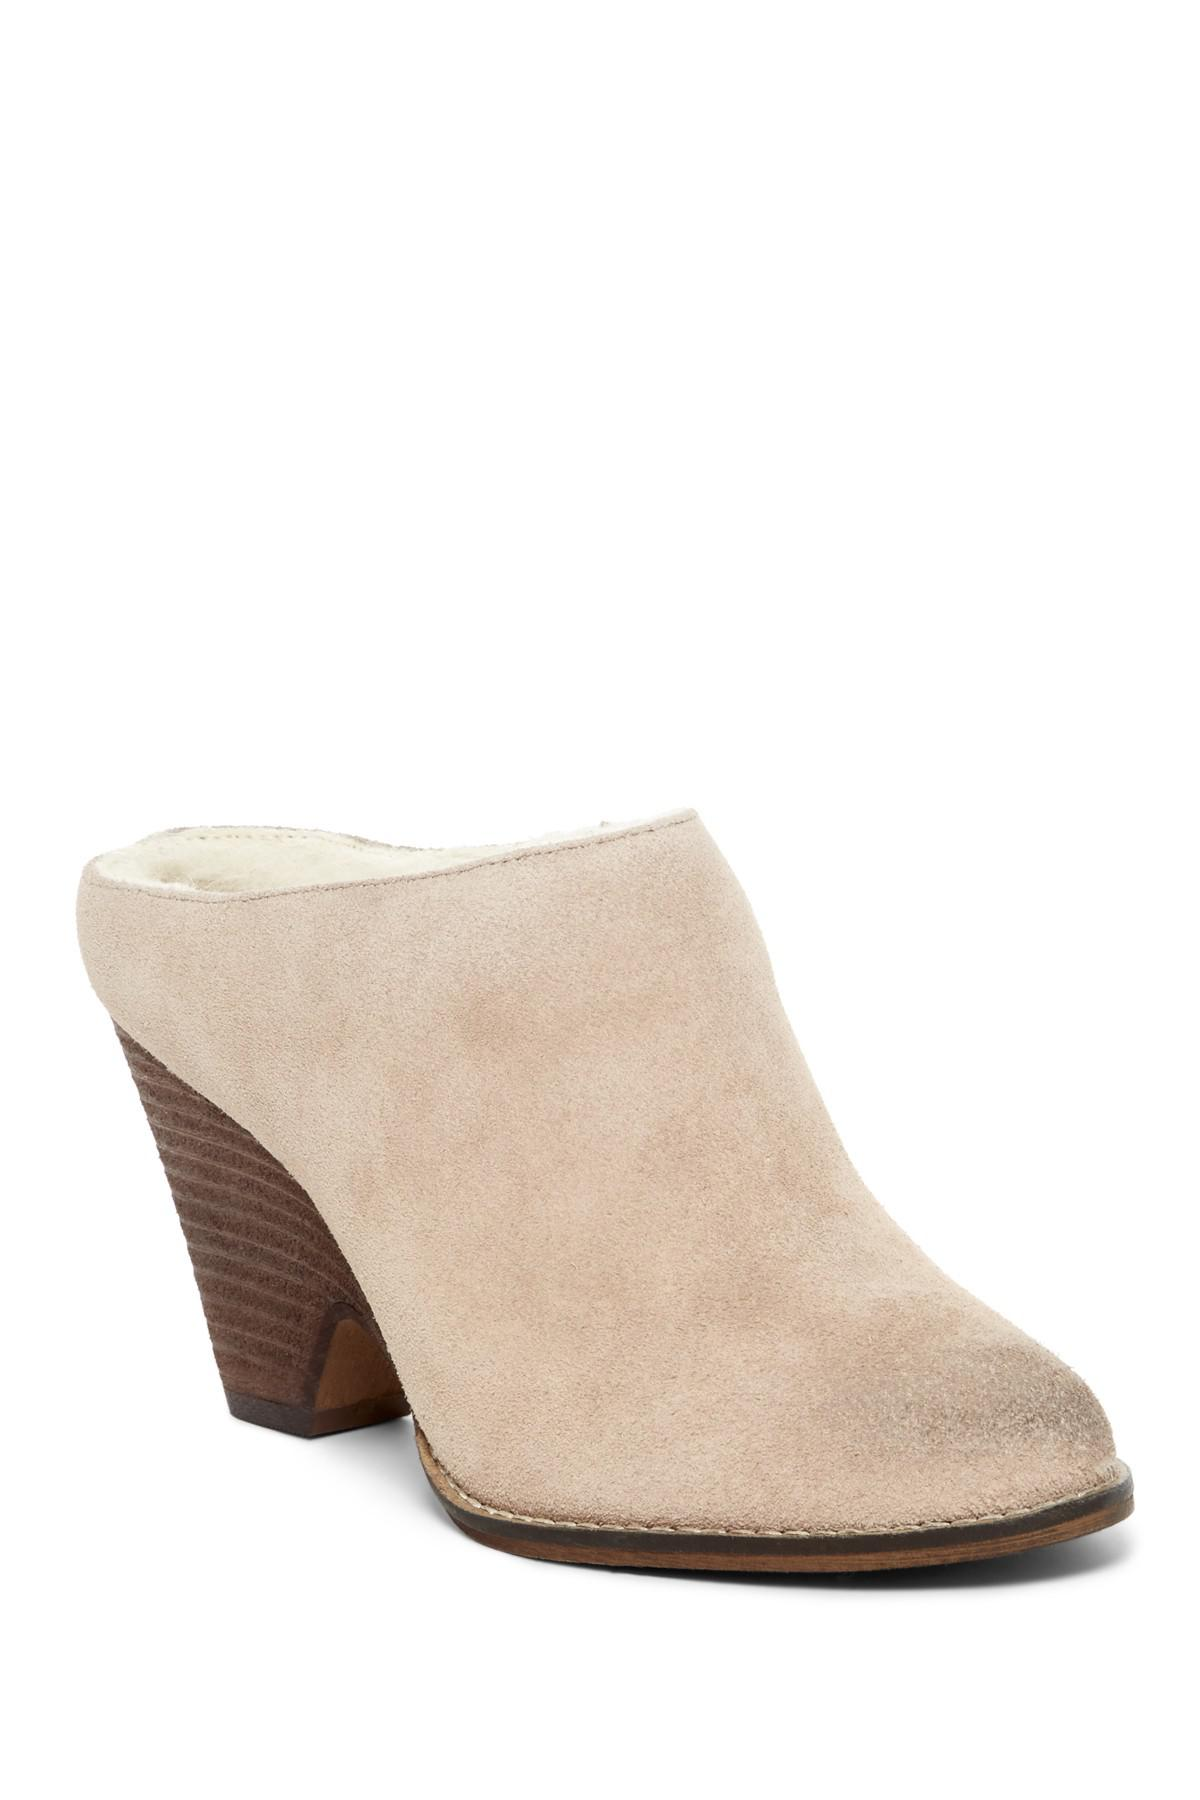 Kelsi Dagger Brooklyn Hocking Faux Sherling Lined Suede Mule